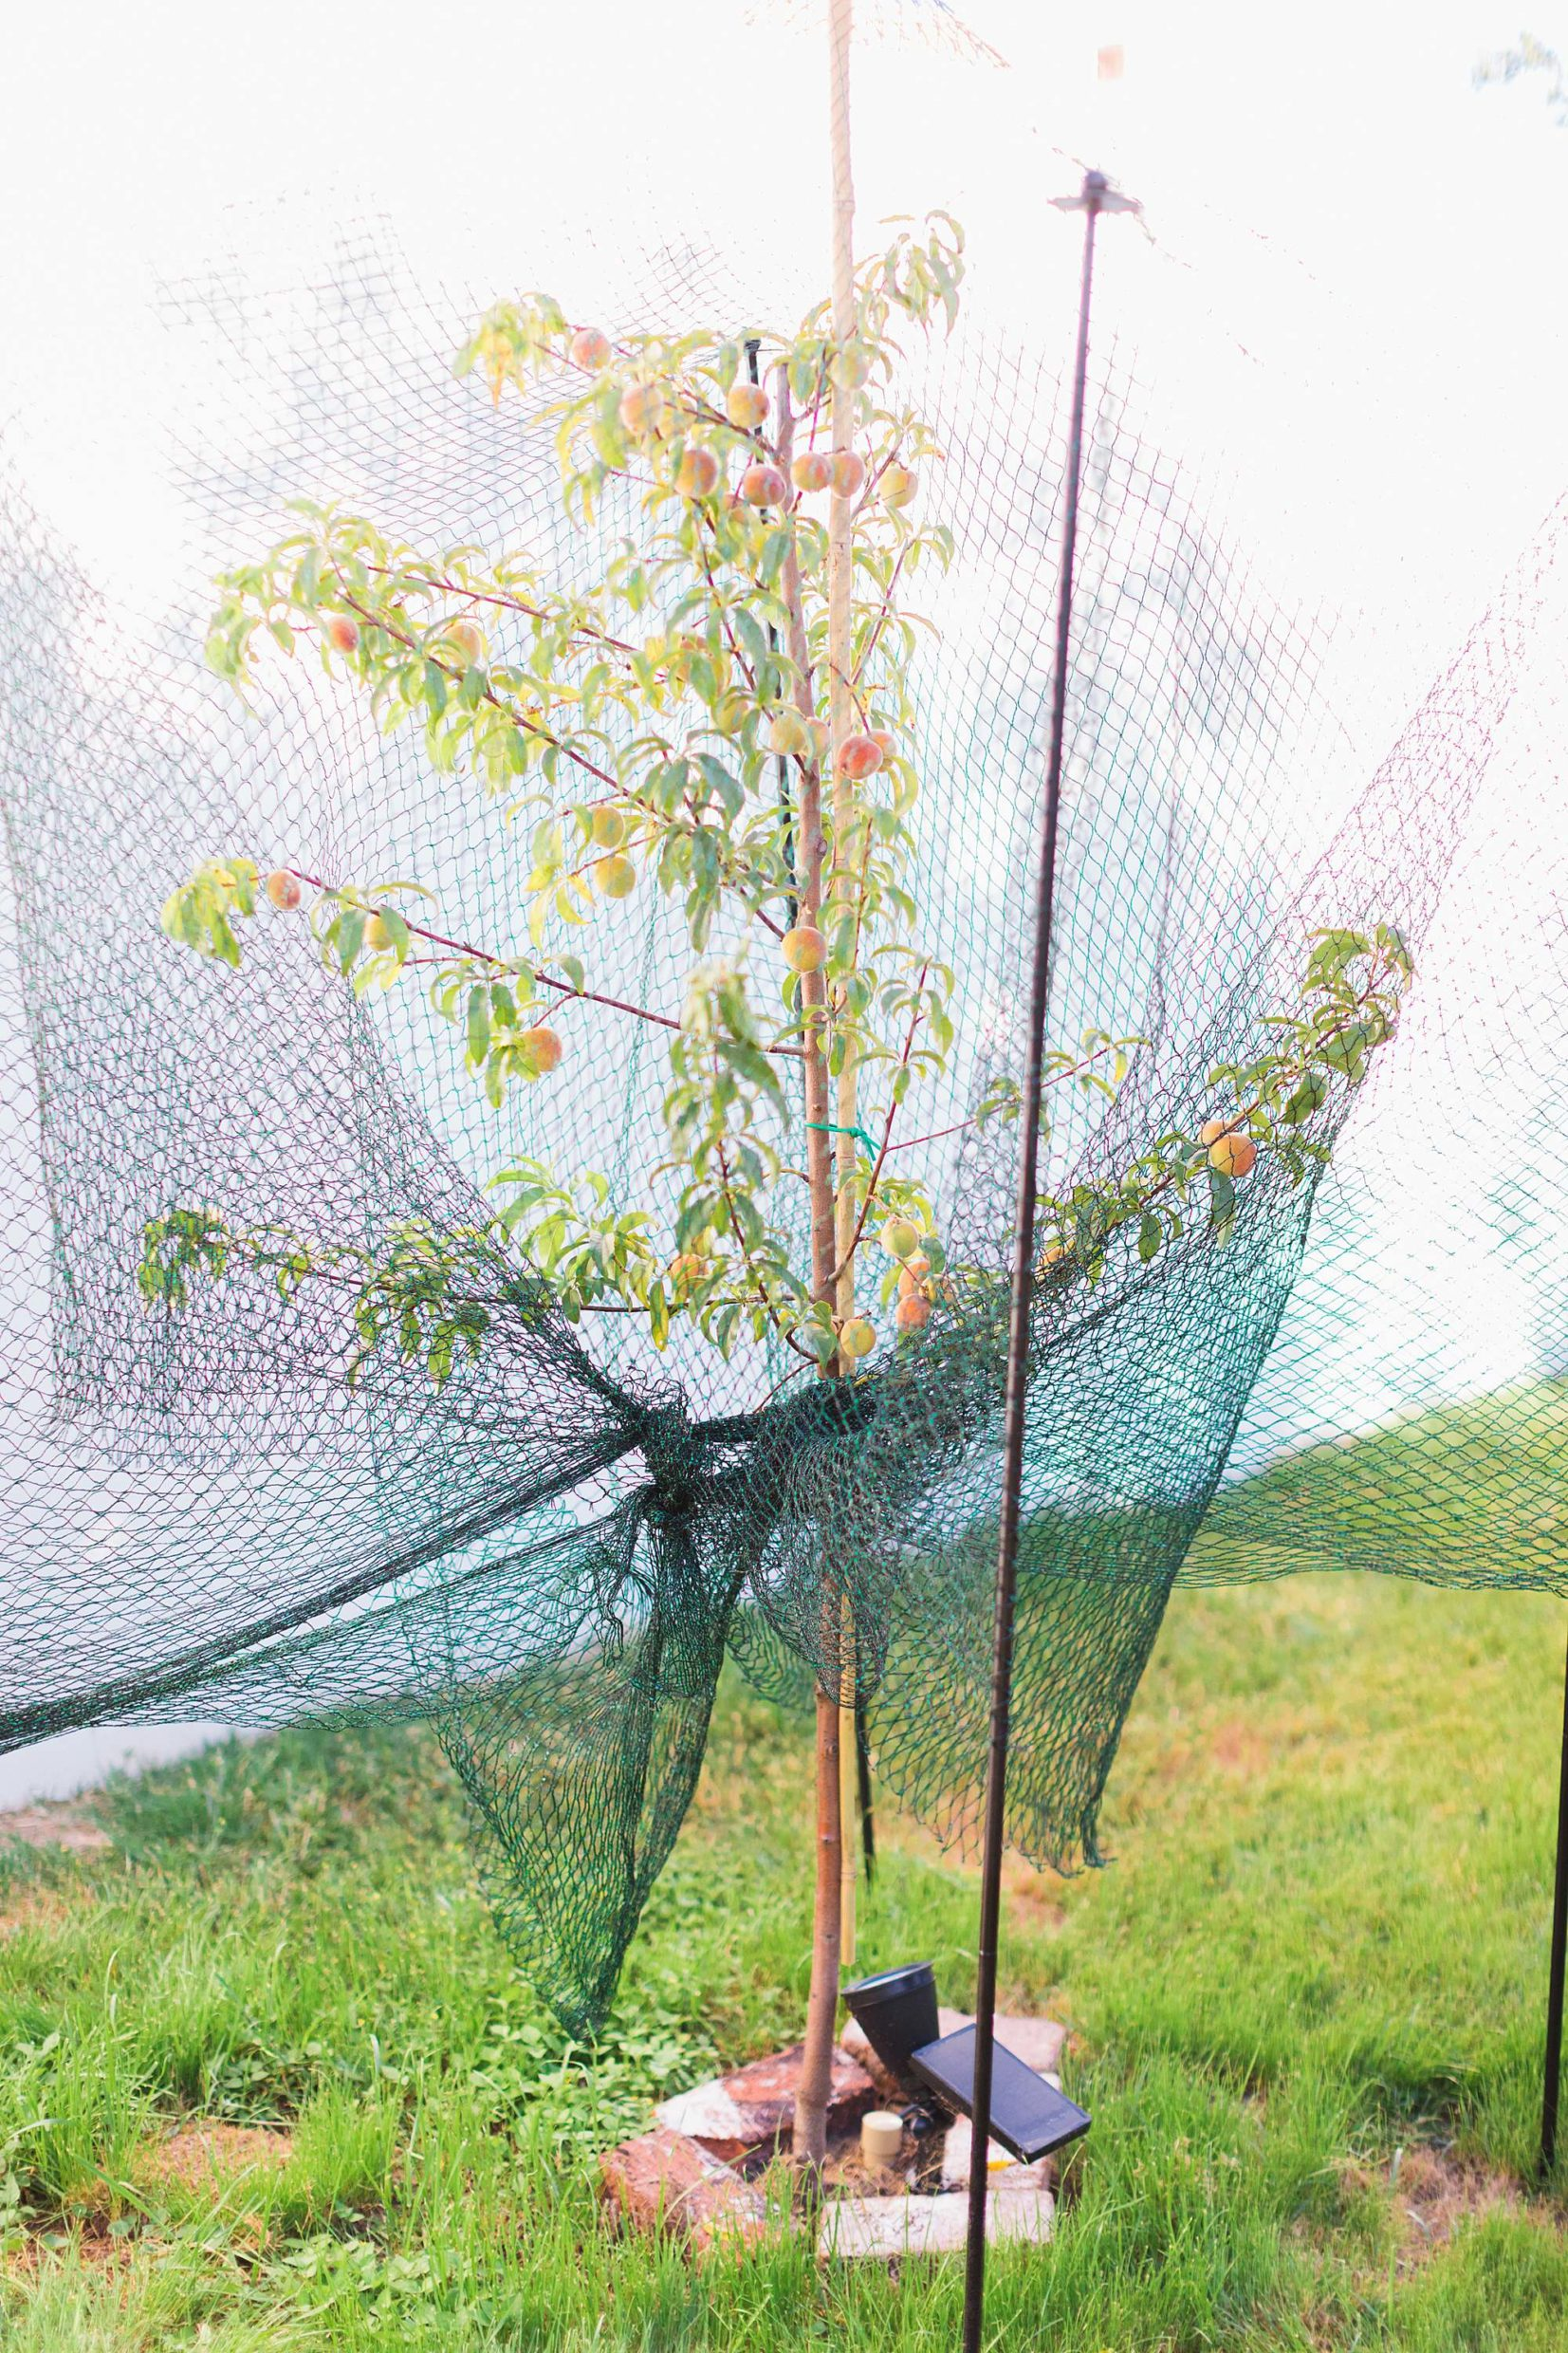 take care of peaches before ripening with bird netting